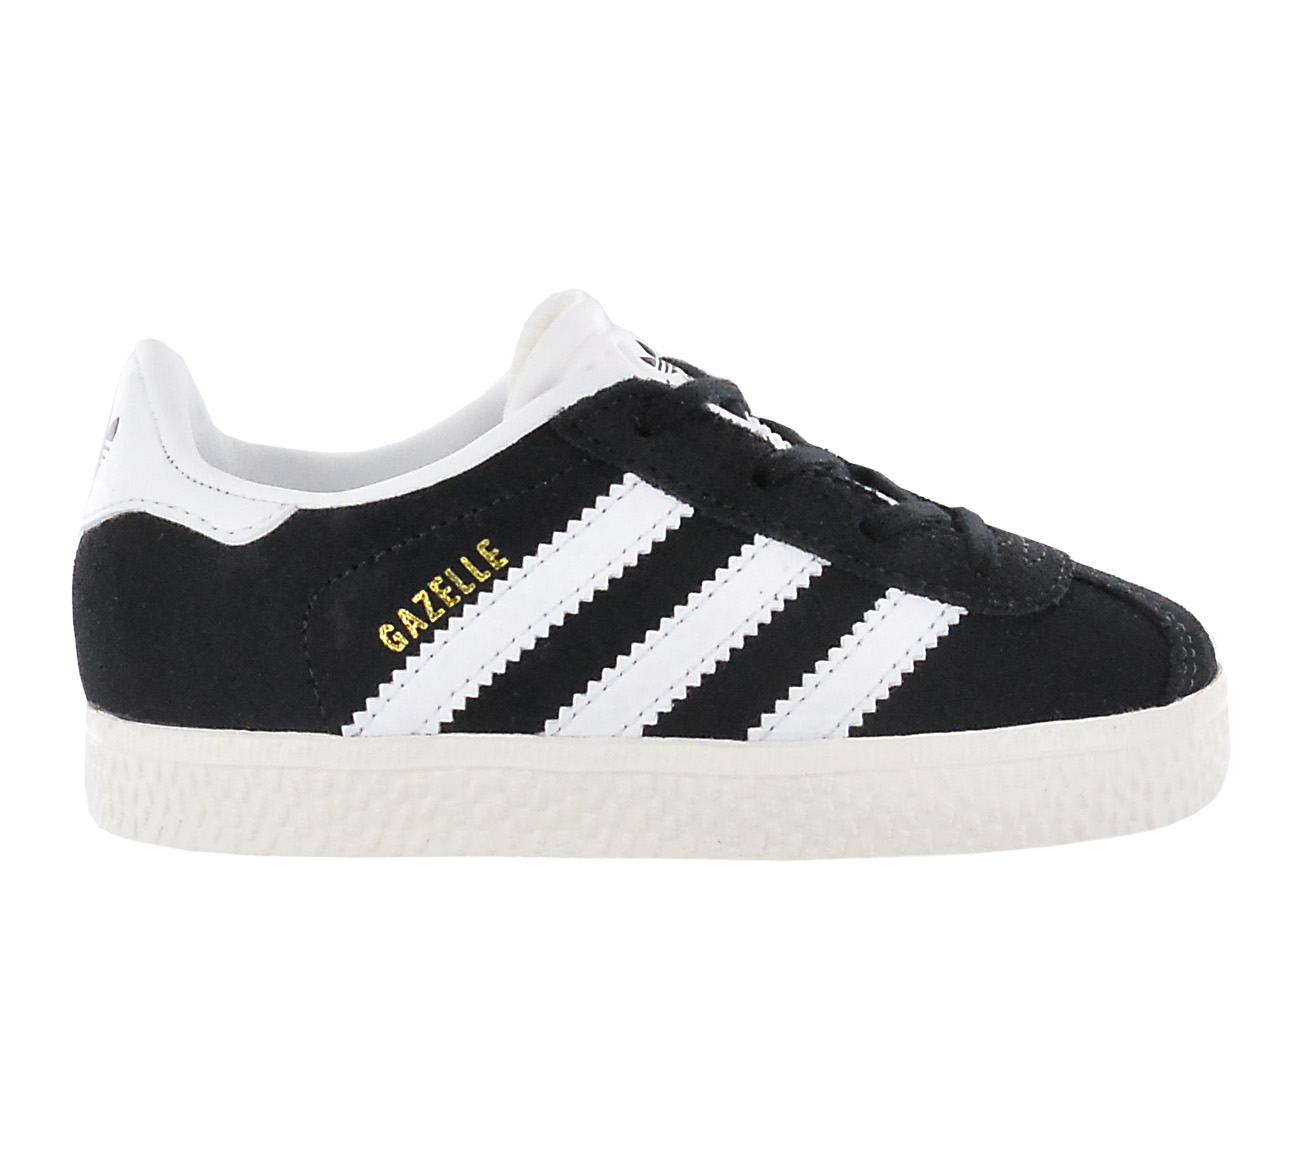 the best attitude 15f7b e3c44 Adidas Gazelle Y Childrens Shoes Leather Boys Girls Sneaker Black ...